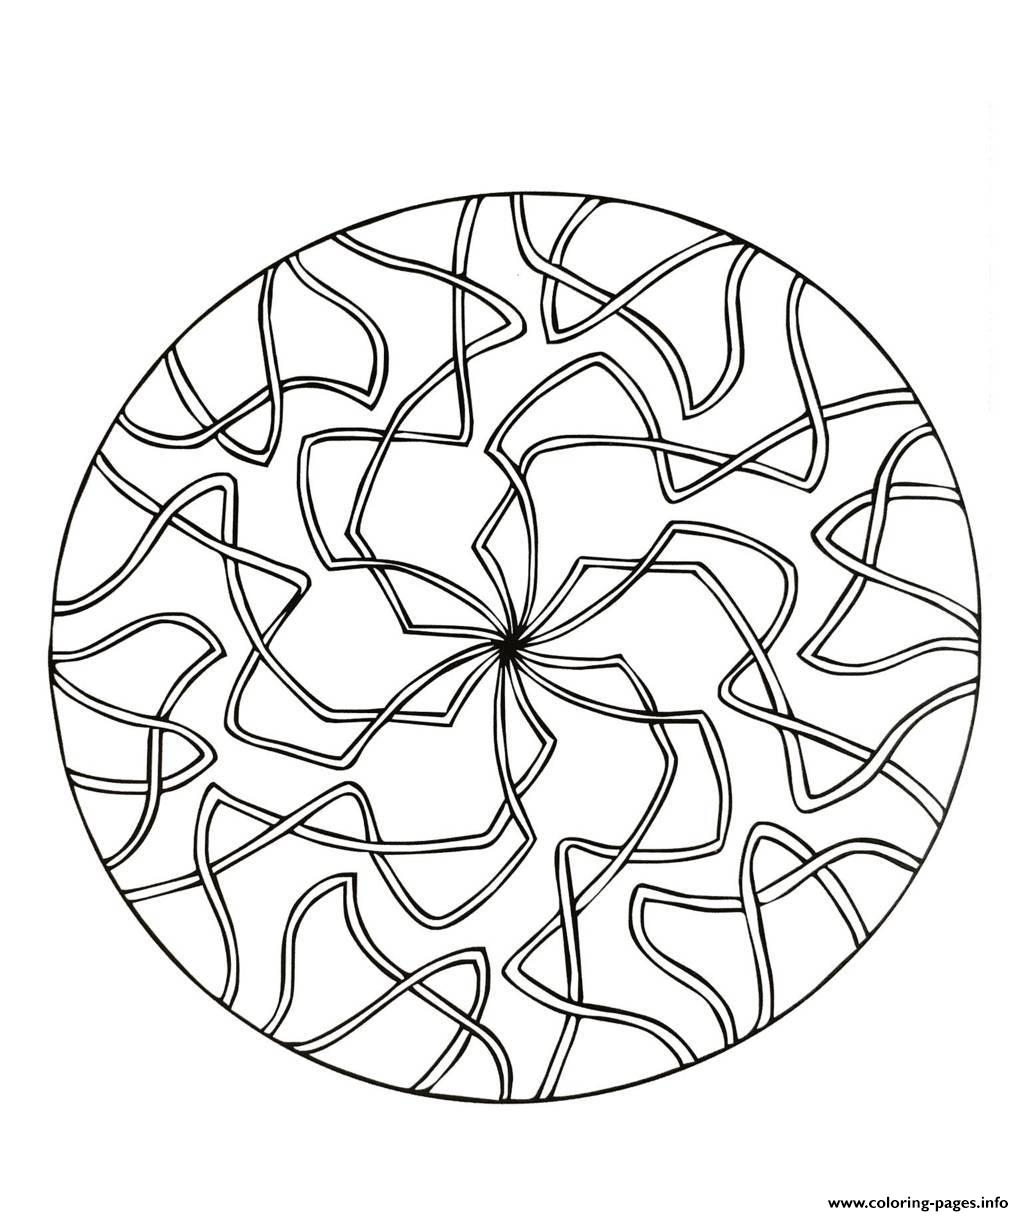 Mandalas To Download For Free 15  coloring pages